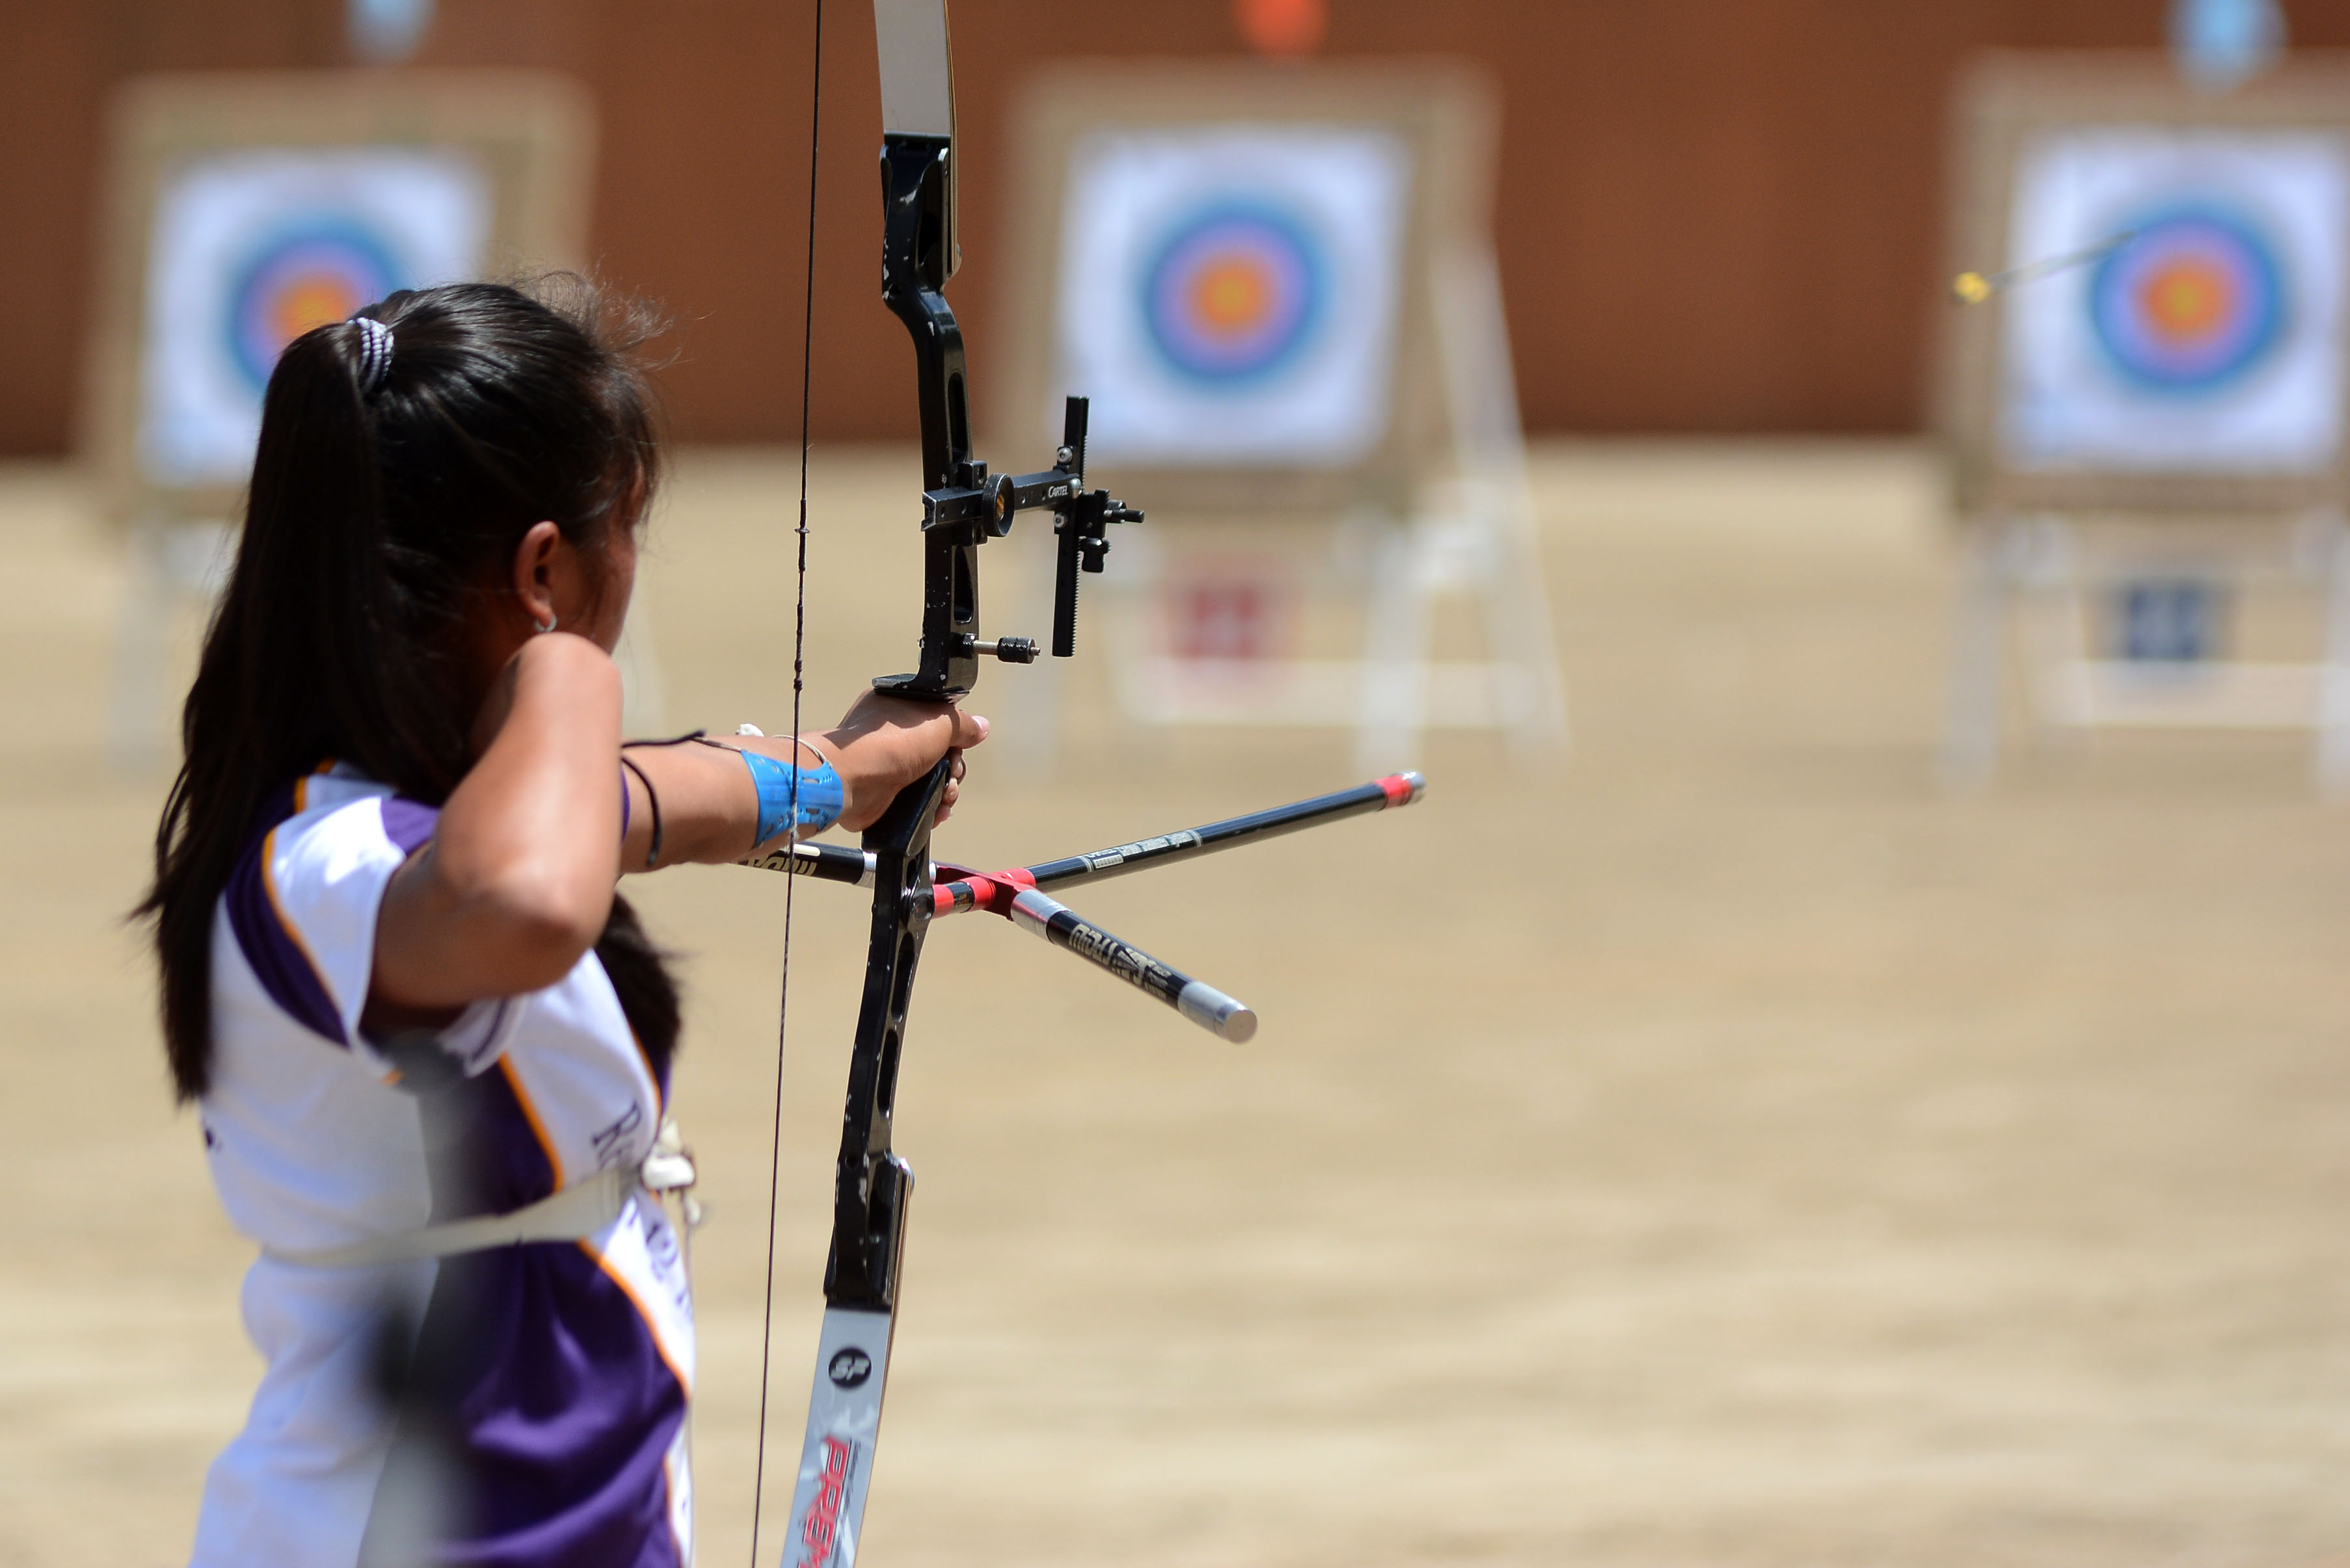 RELEASE. An archer releases her arrow in competition. Photo by Roy Secretario/ Rappler